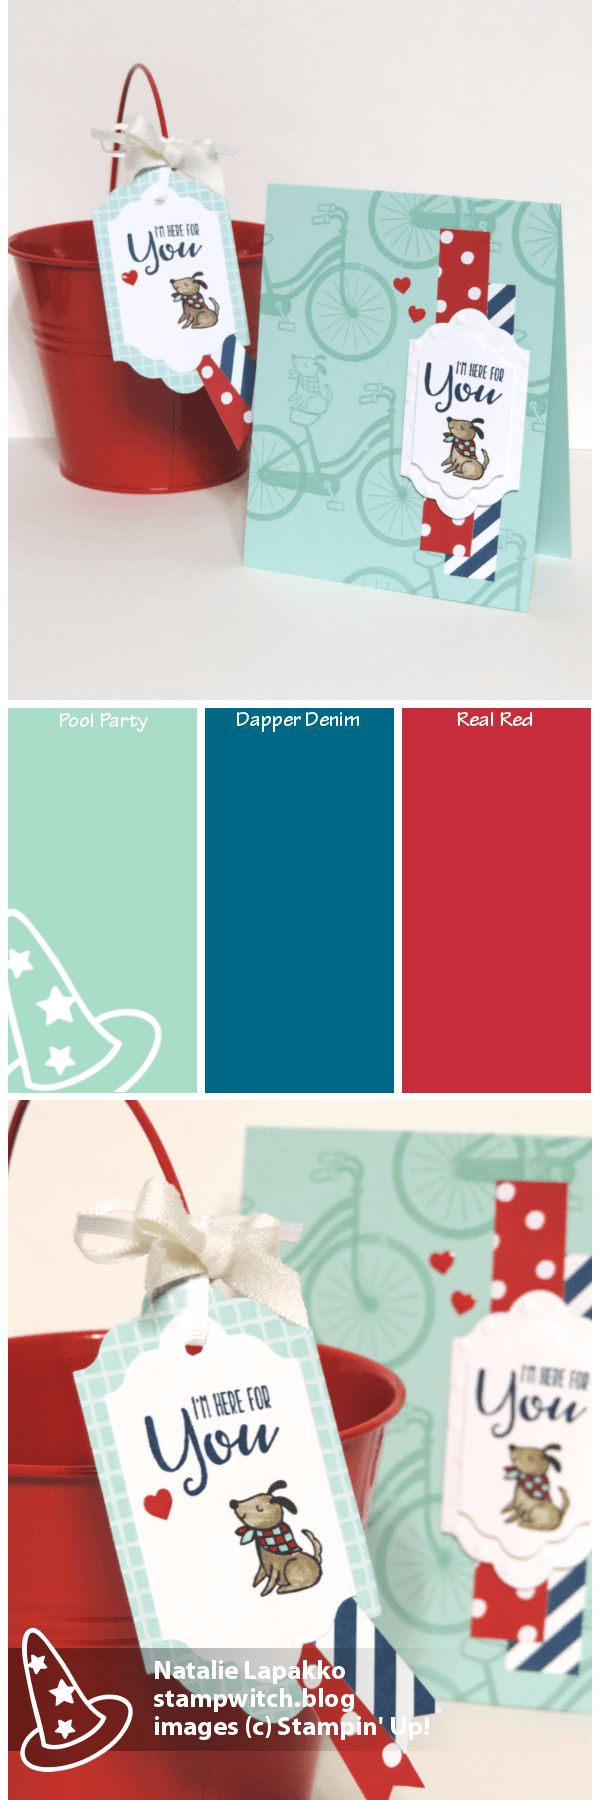 Homemade card by Natalie Lapakko with SNEAK PEEK of Bike Ride stamp set from Stampin' Up! Color inspiration: Pool PArty, Dapper Denim, Real Red